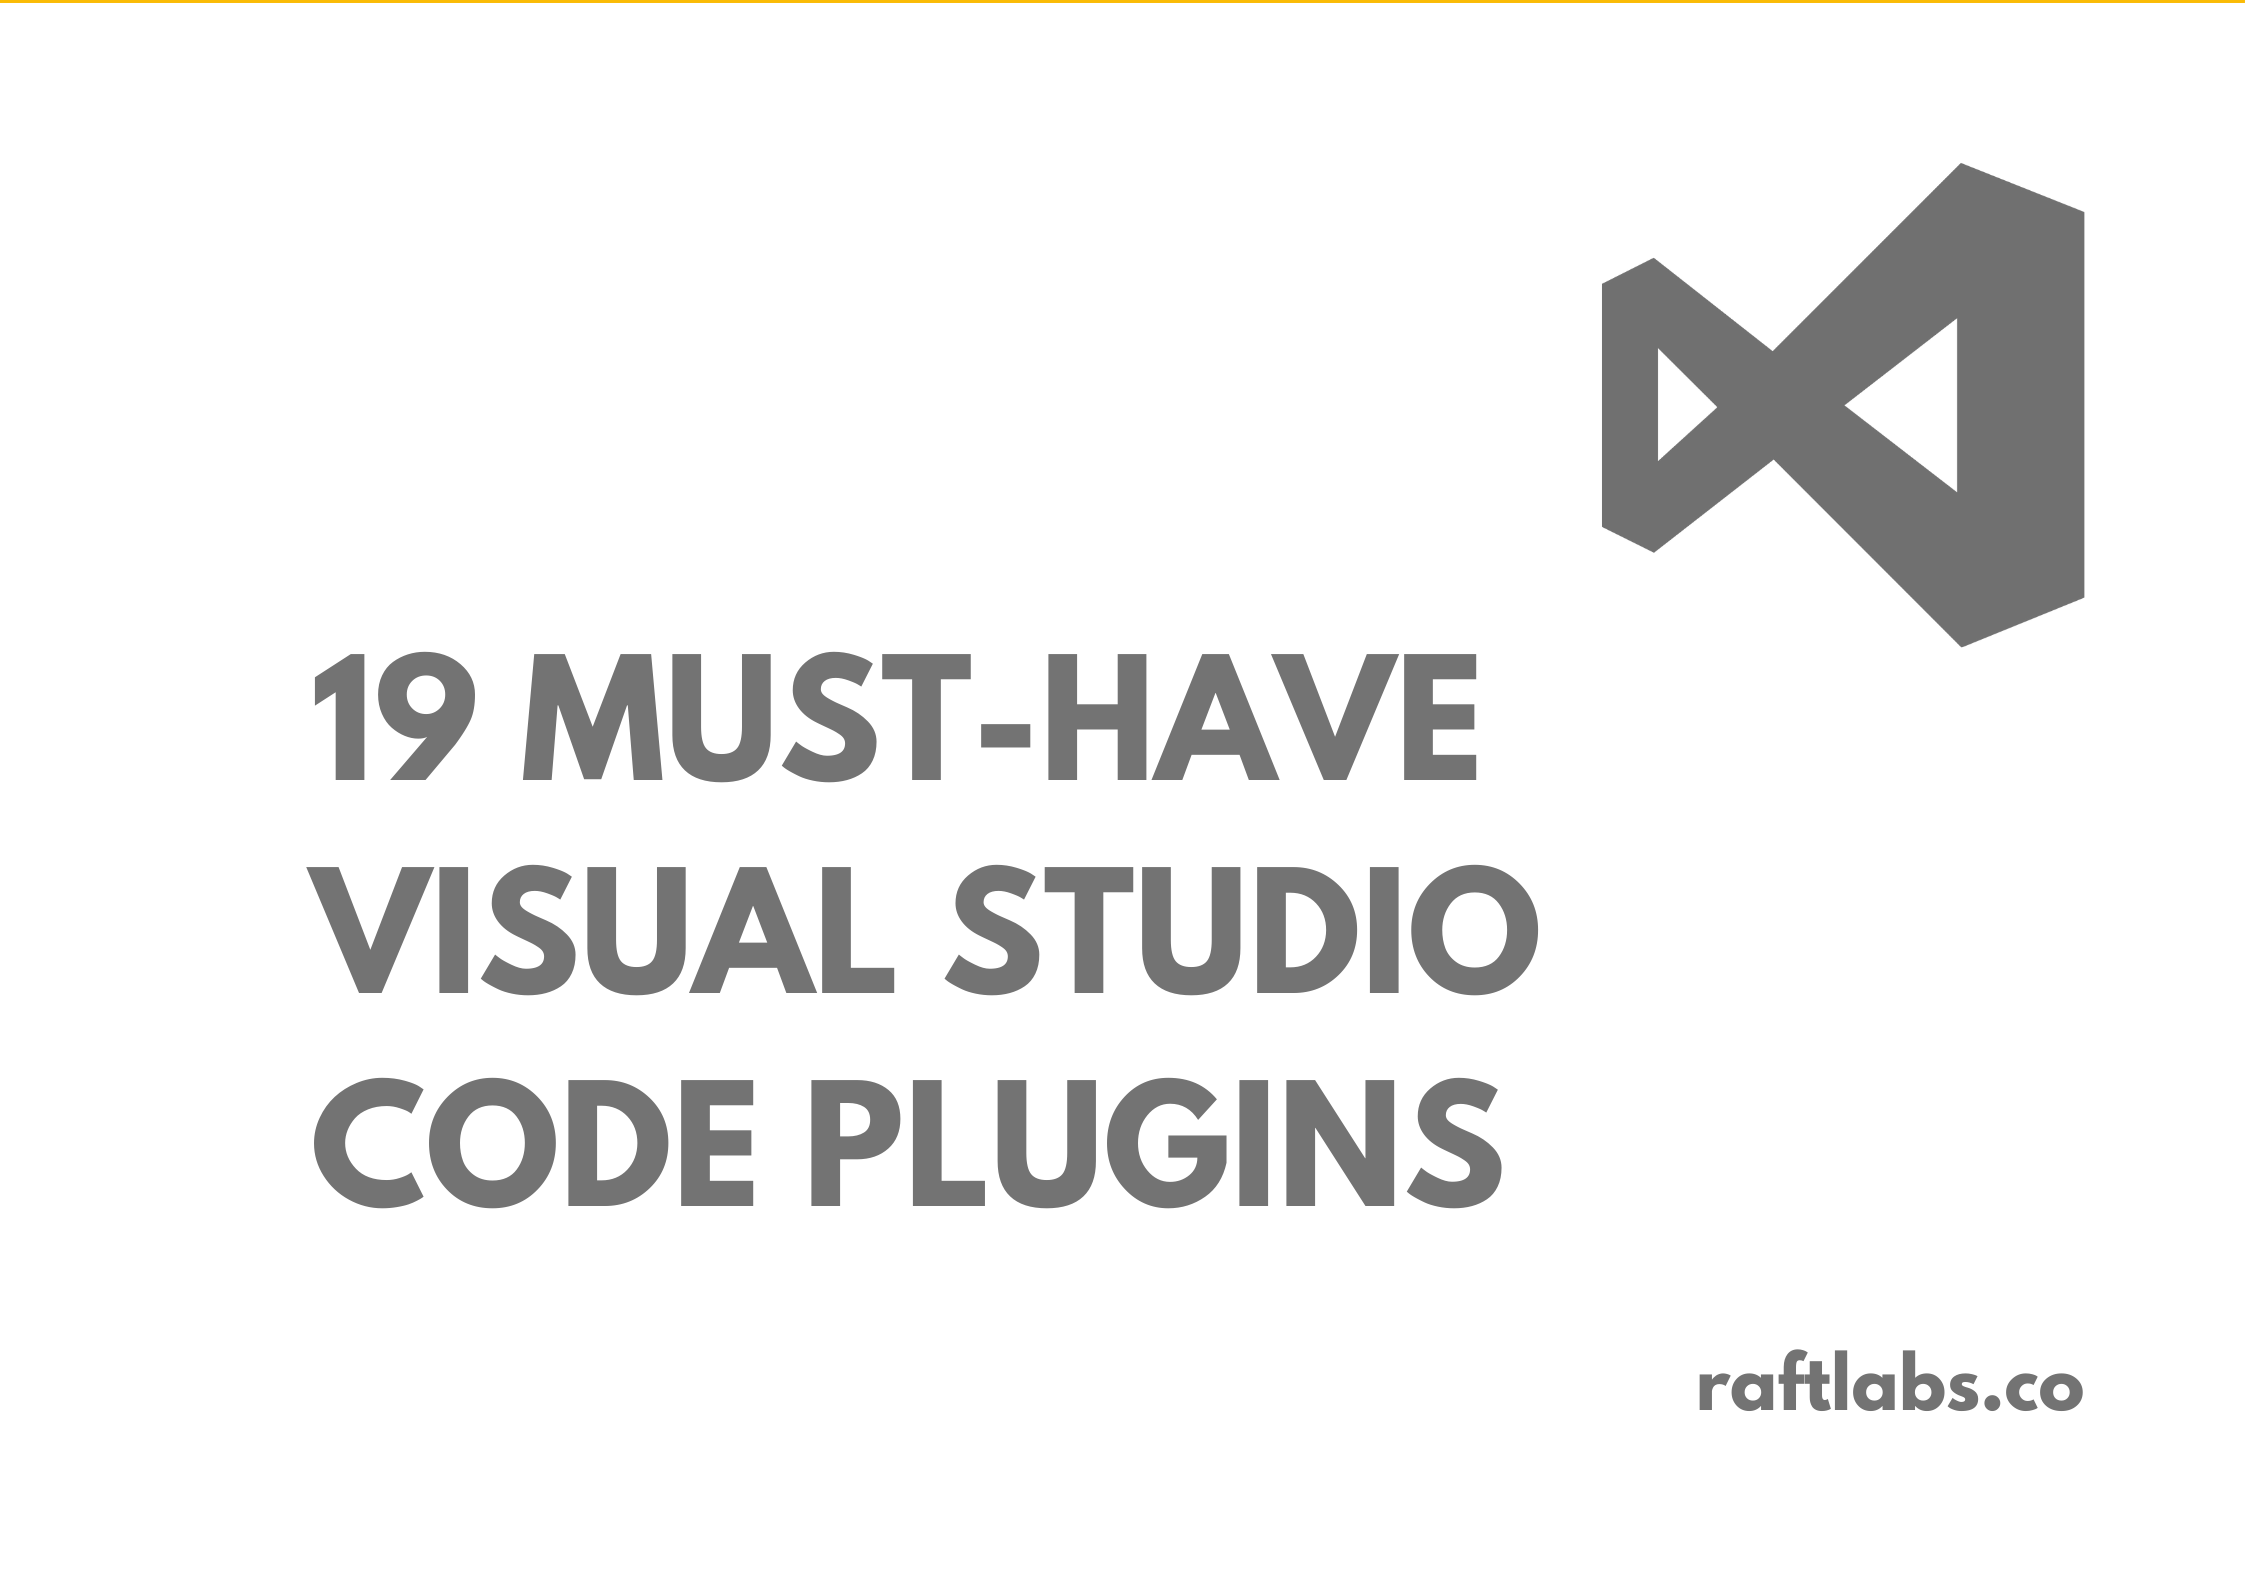 19 Must-Have VSC Plugins with Visual Studio Code Logo - raftlabs.co